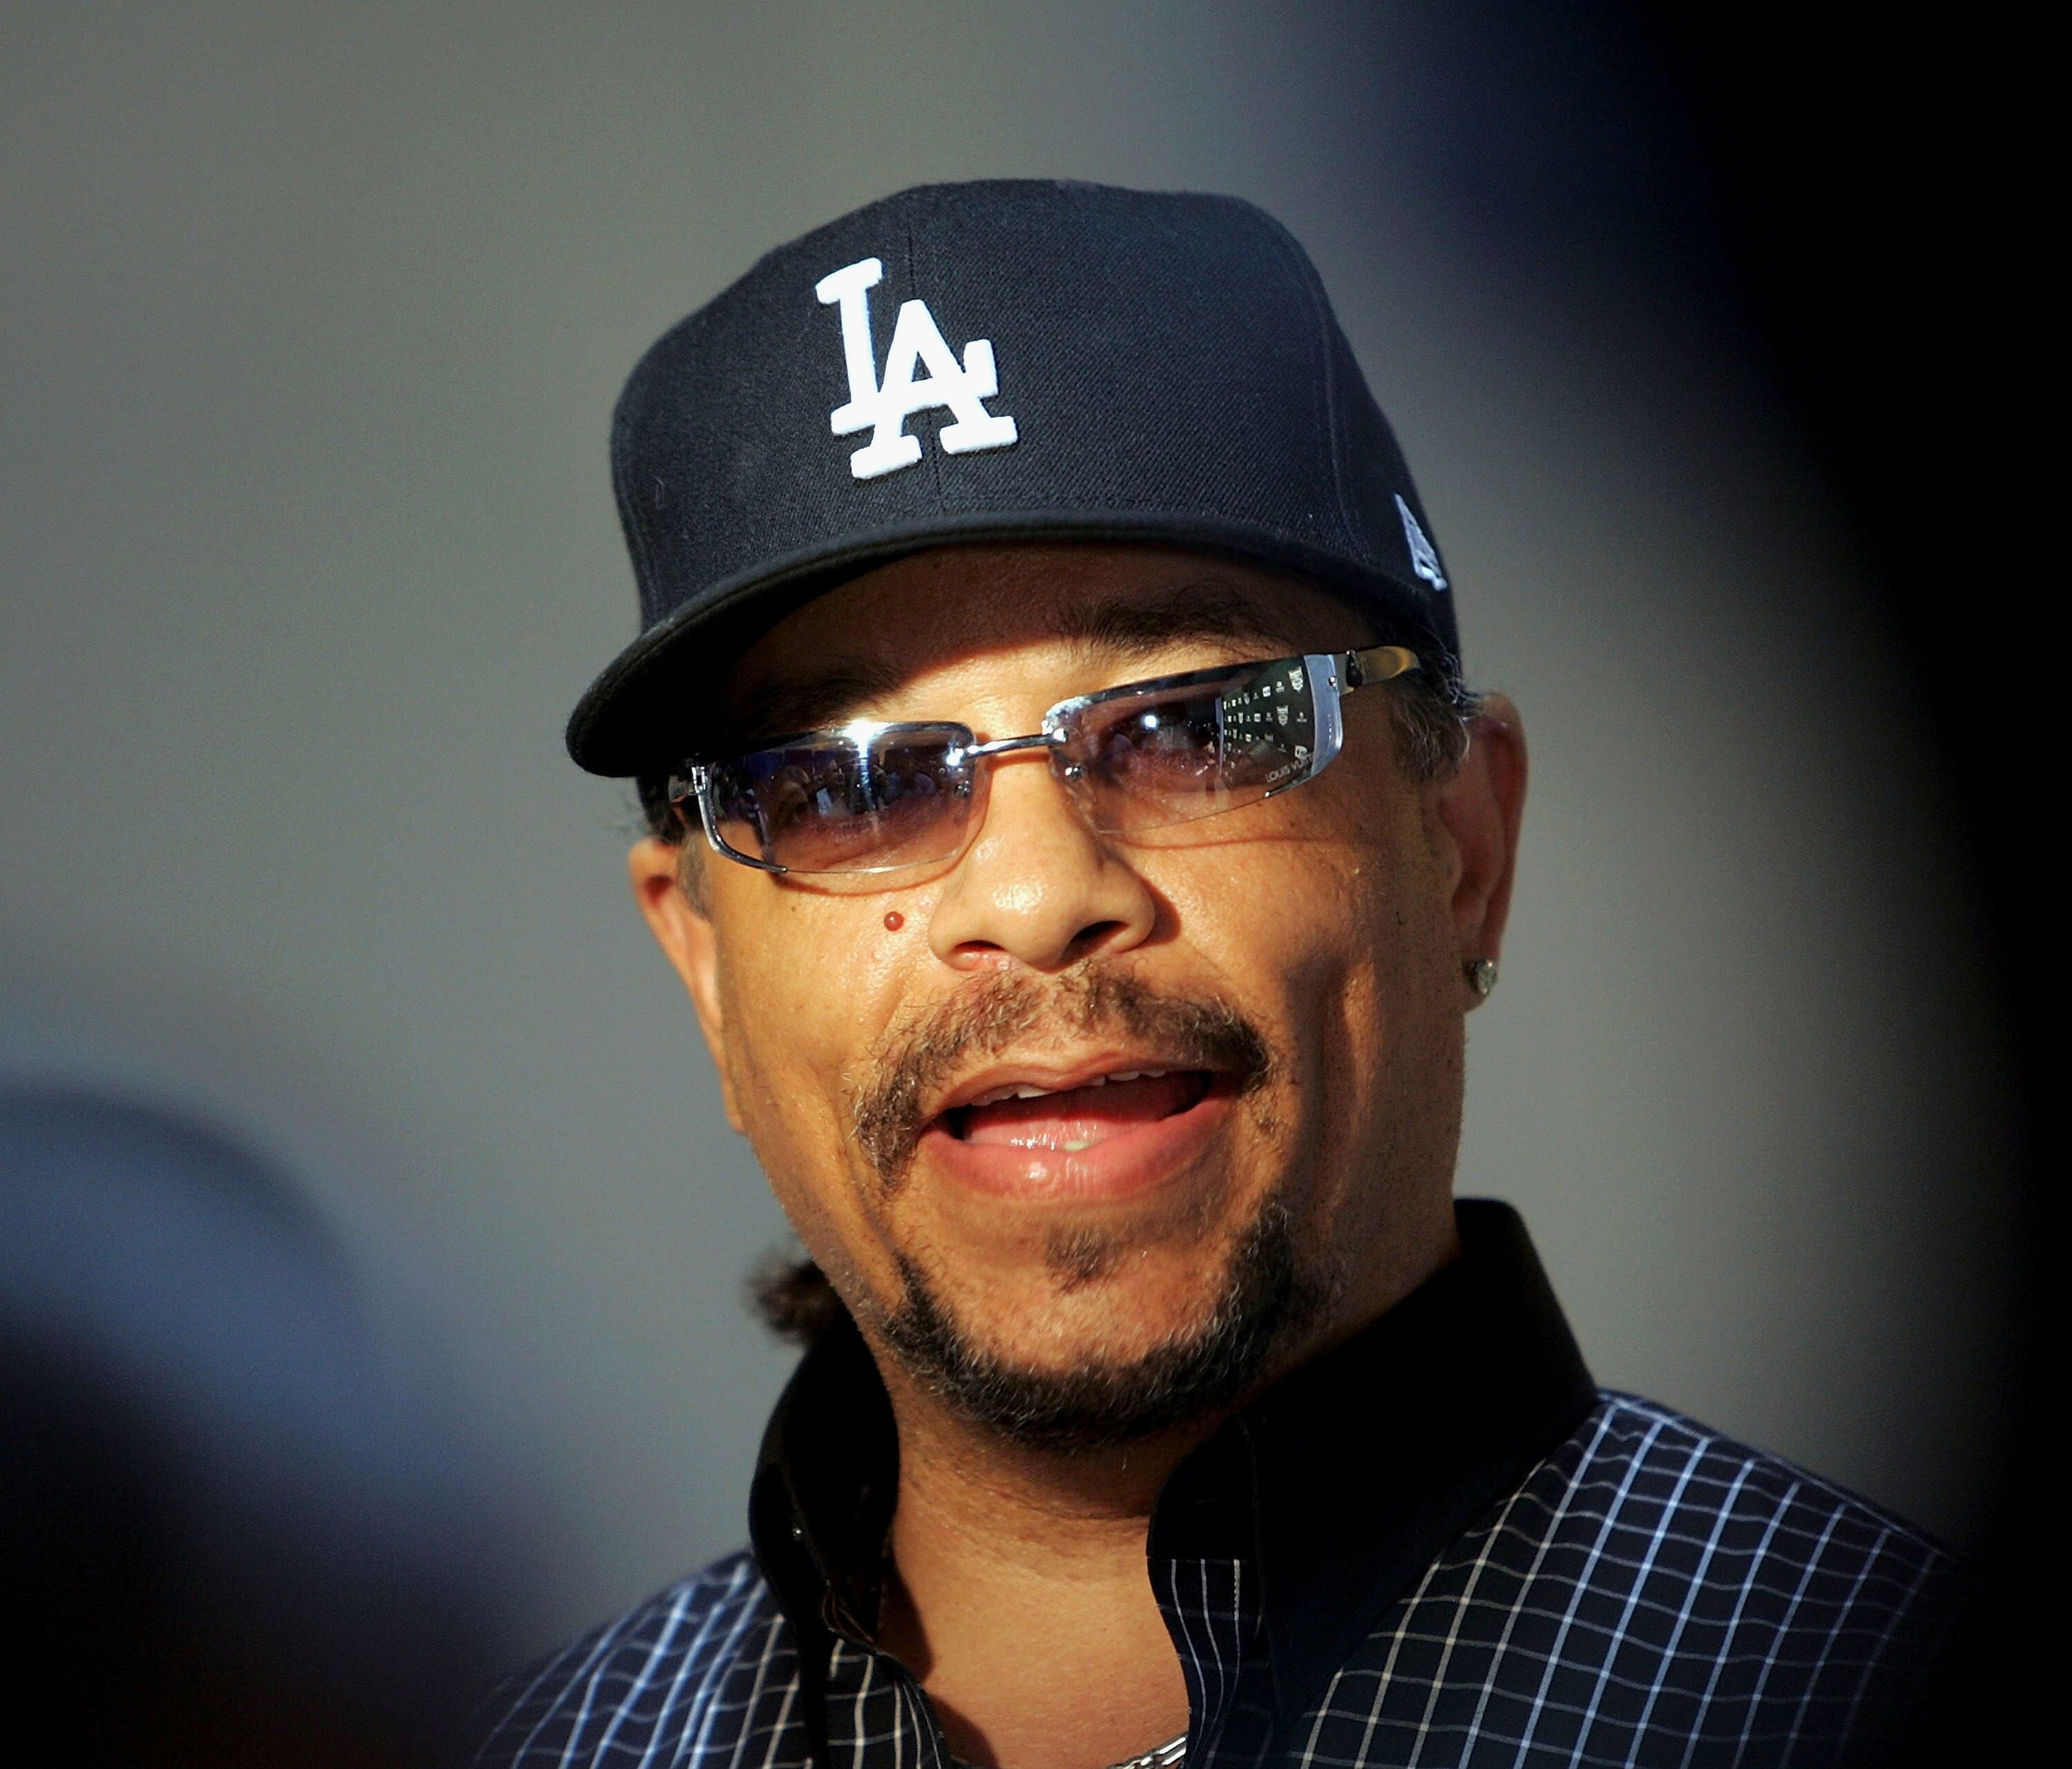 Ice-T attends VH1's 2005 Hip Hop Honors Pre-party at Splashlight Studios. | Source: Getty Images